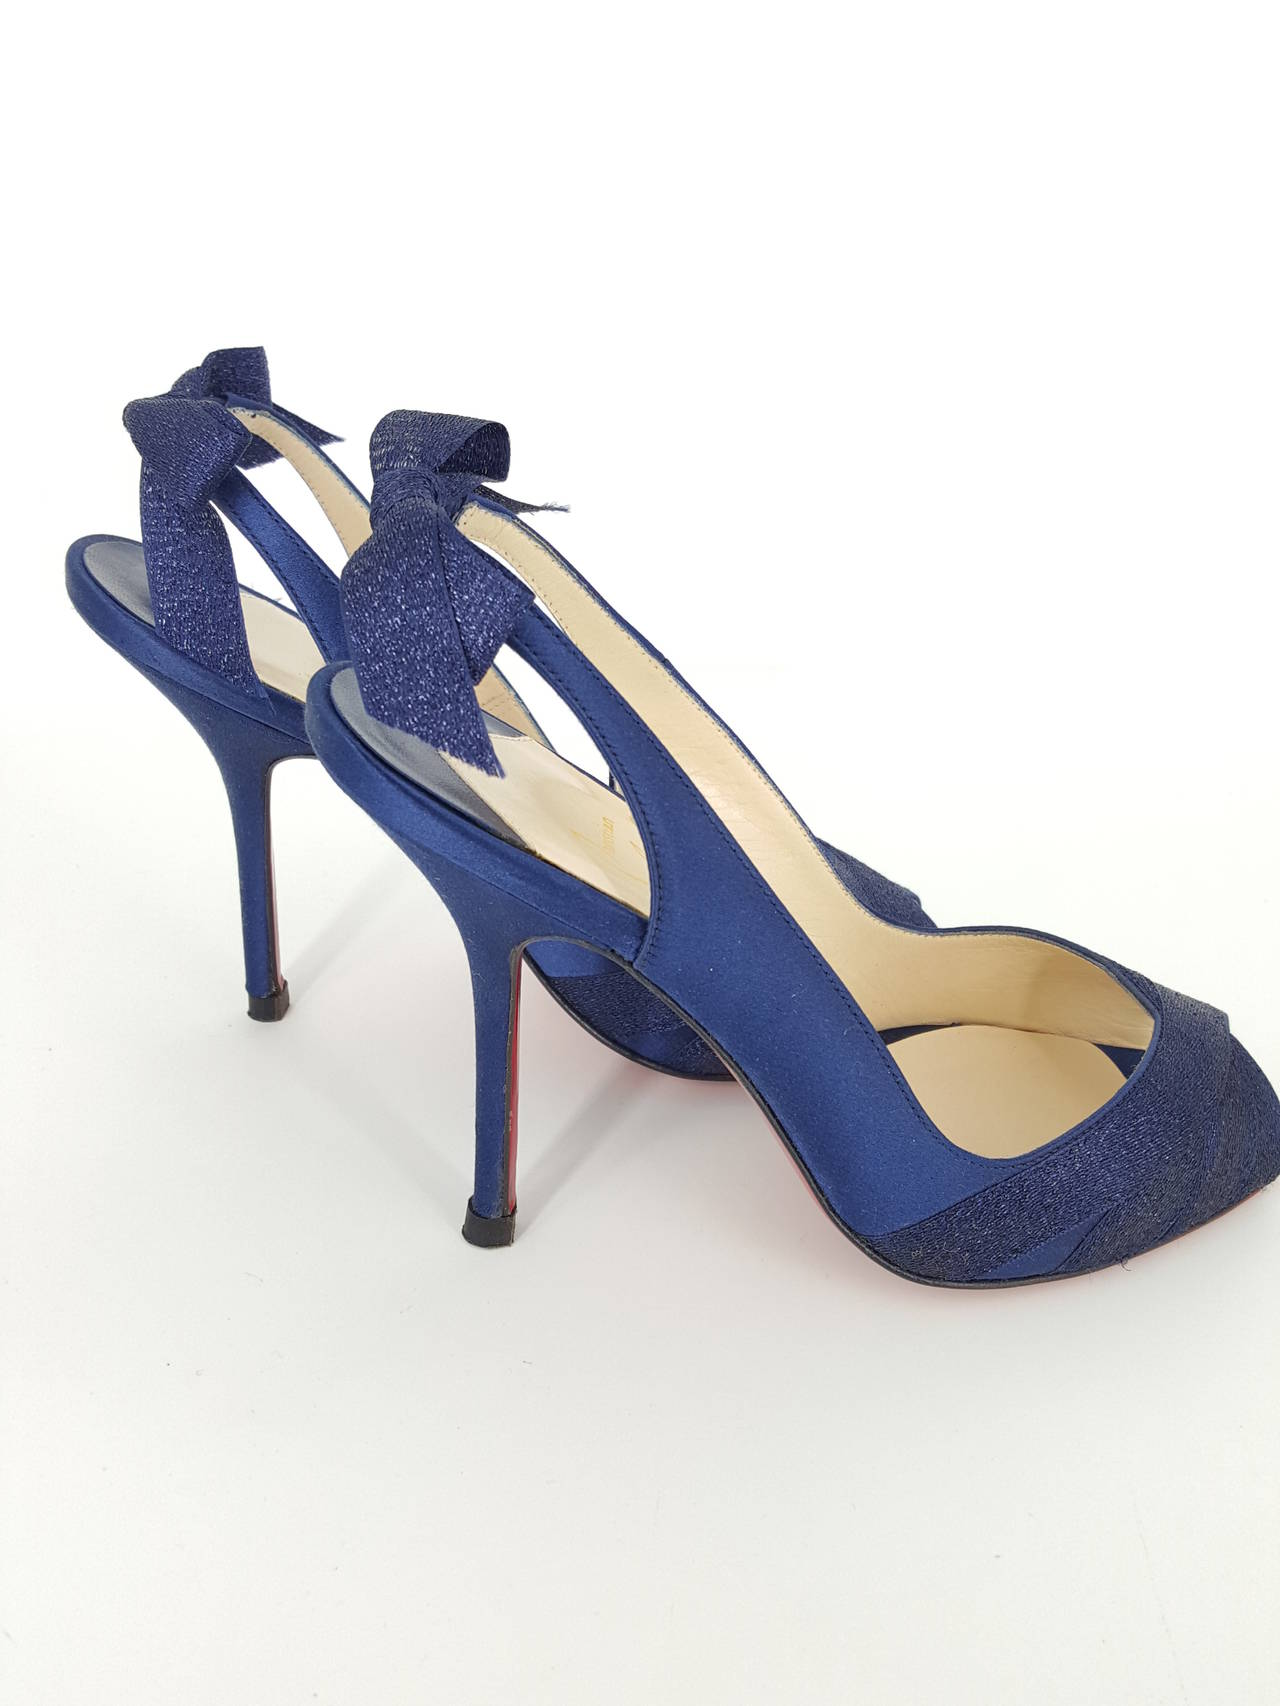 Christian Louboutin Navy Blue Sparkle Sling Back Heels With Bow.  Size 36 2